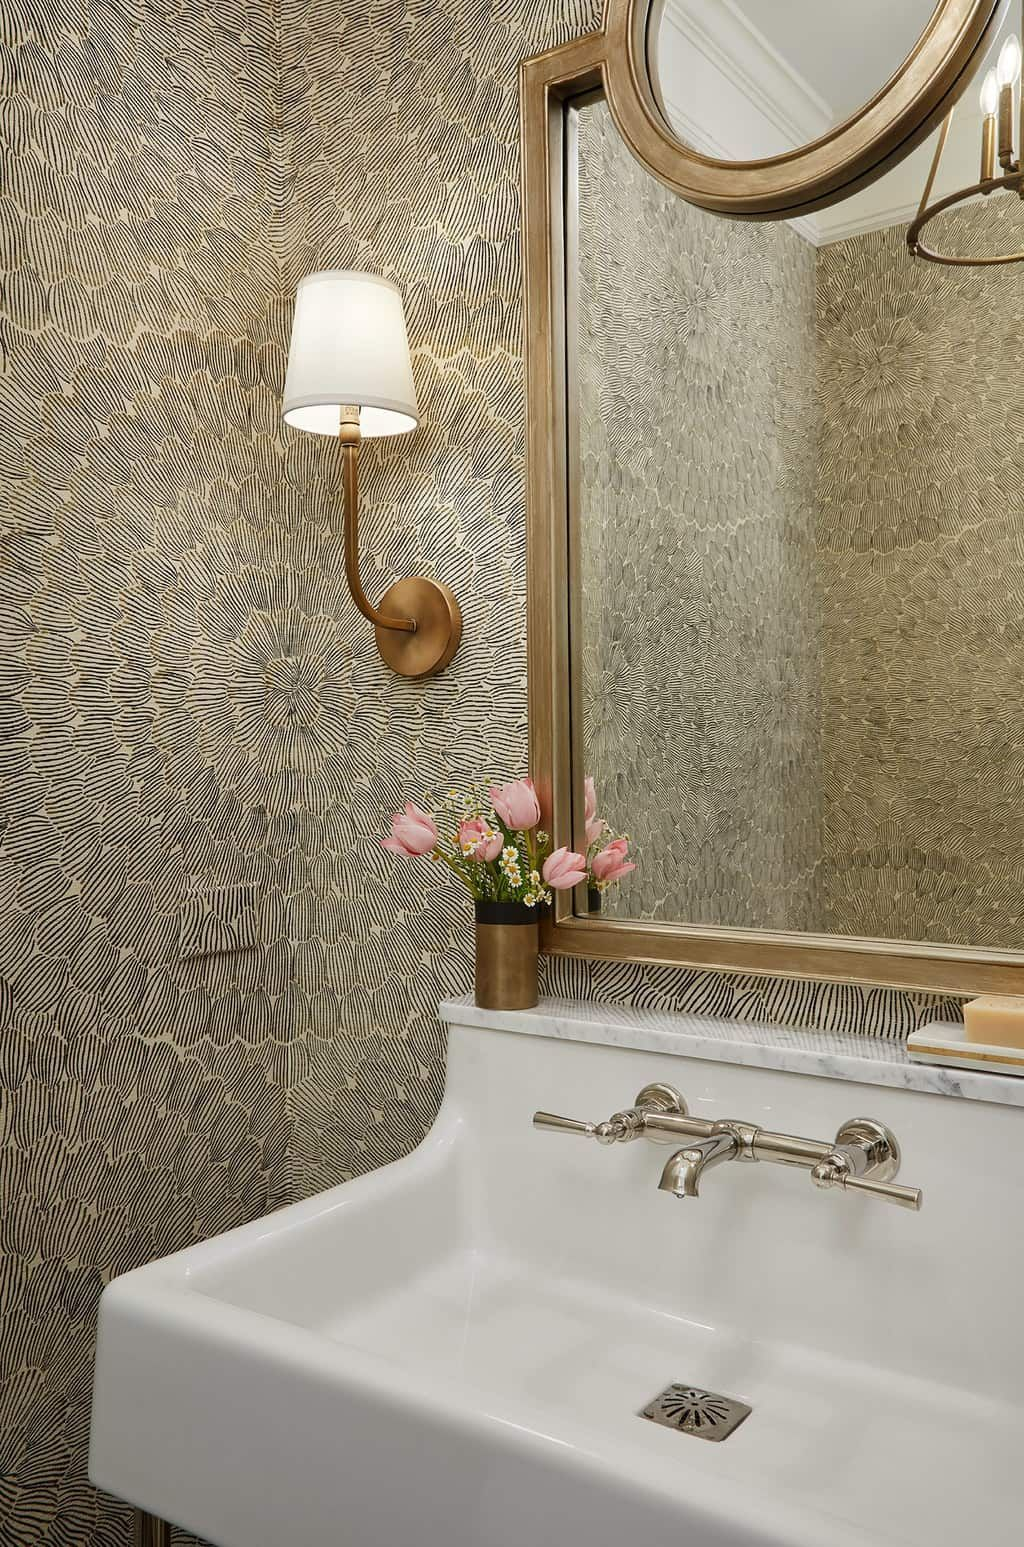 Fixing Water Leaking From Upstairs Bathroom To Downstairs 101 Living Room Decor Video Powder Room Decor Ferguson Showroom